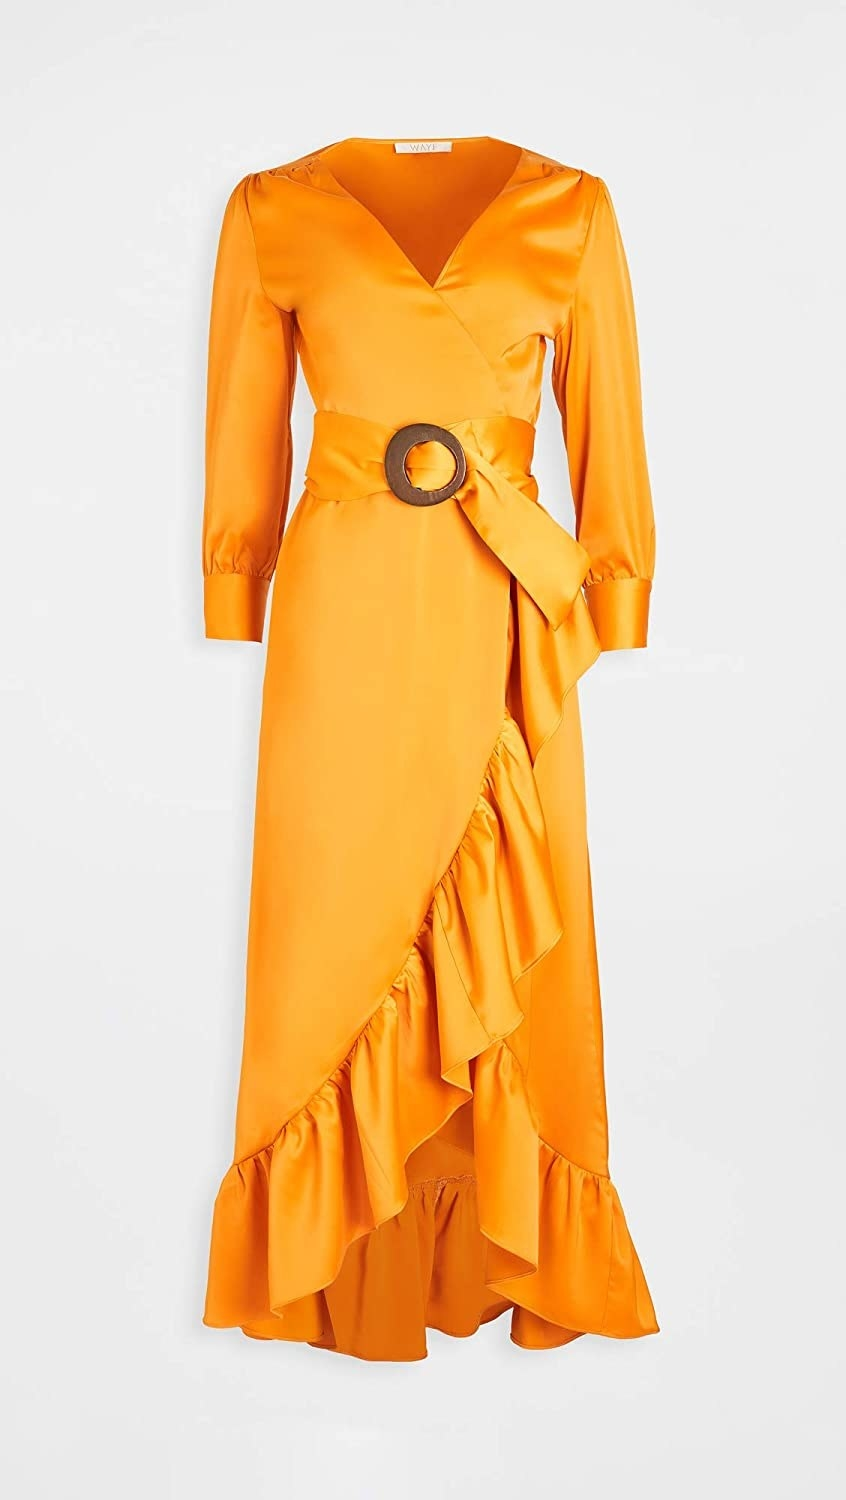 The dress in bright orange with a wrap style and ruffles around the bottom hem, and thick belt with brown wood buckle